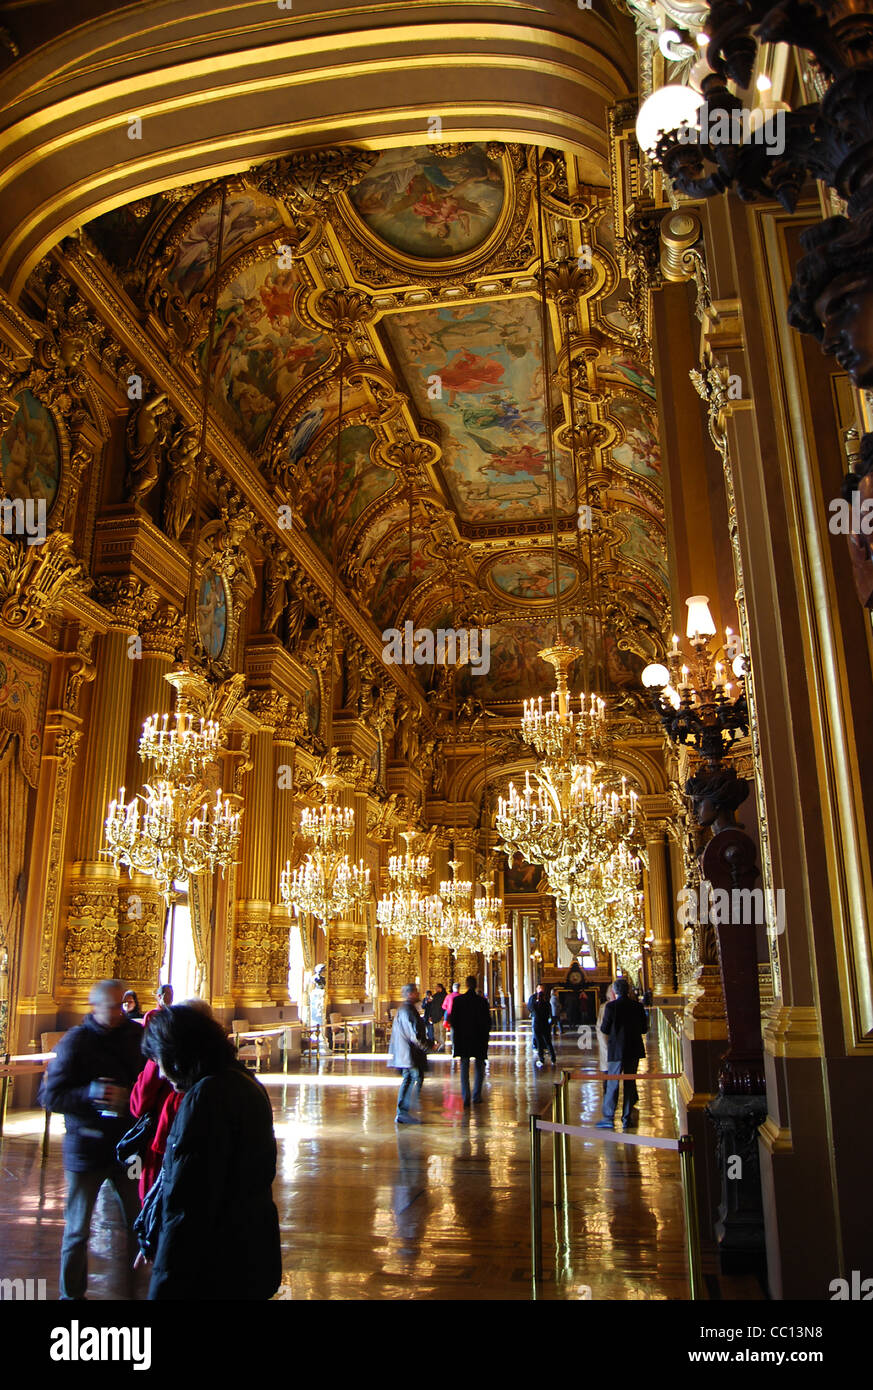 Opera house Paris France number - Stock Image